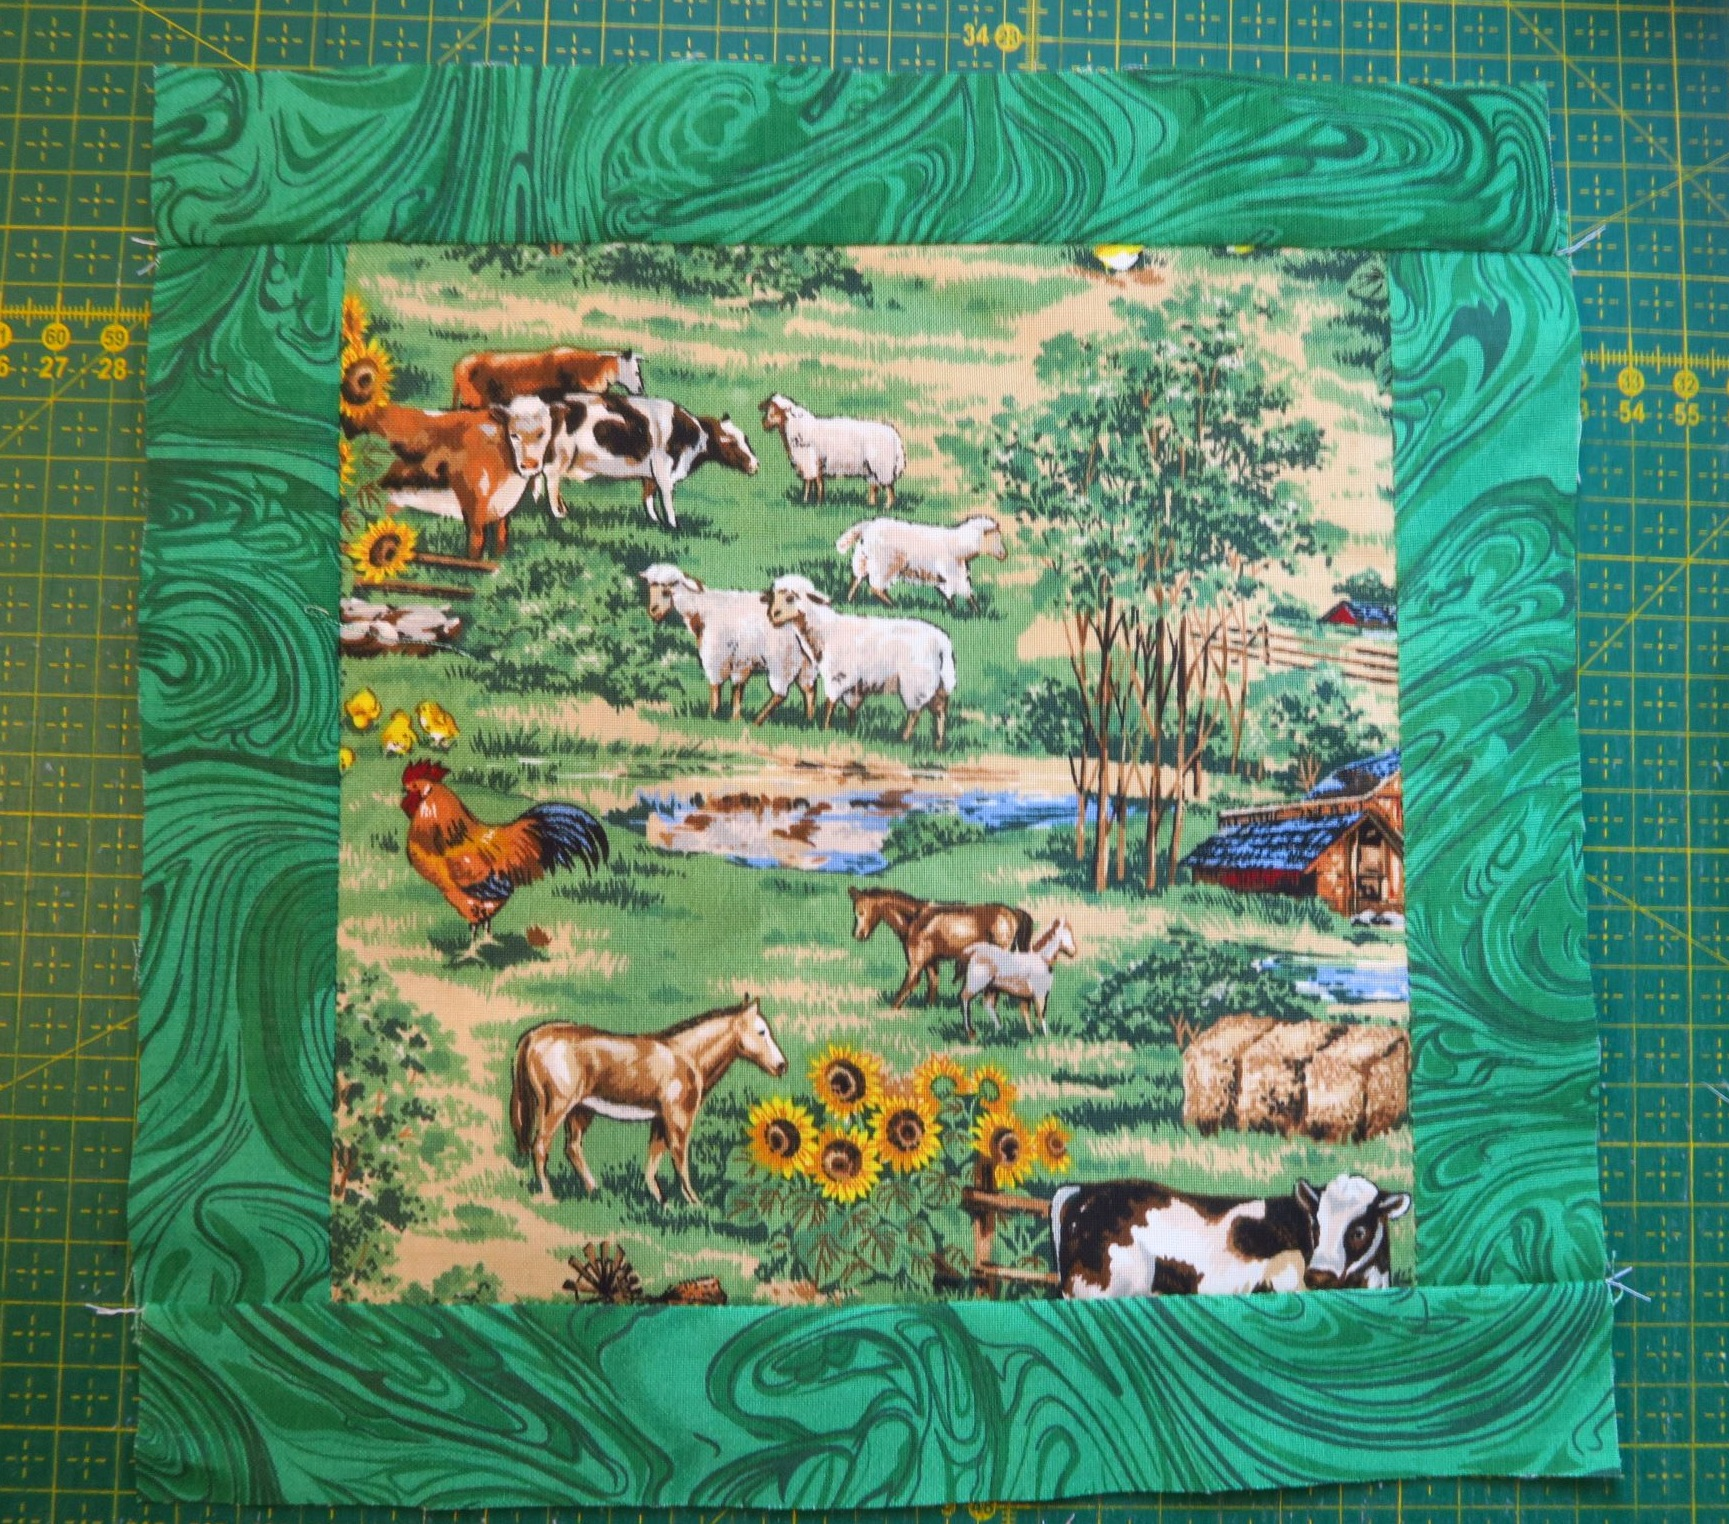 This fabric I had in my own collection here in Poland. It was the perfect addition to the country supplies/farm goods I found in Florida.